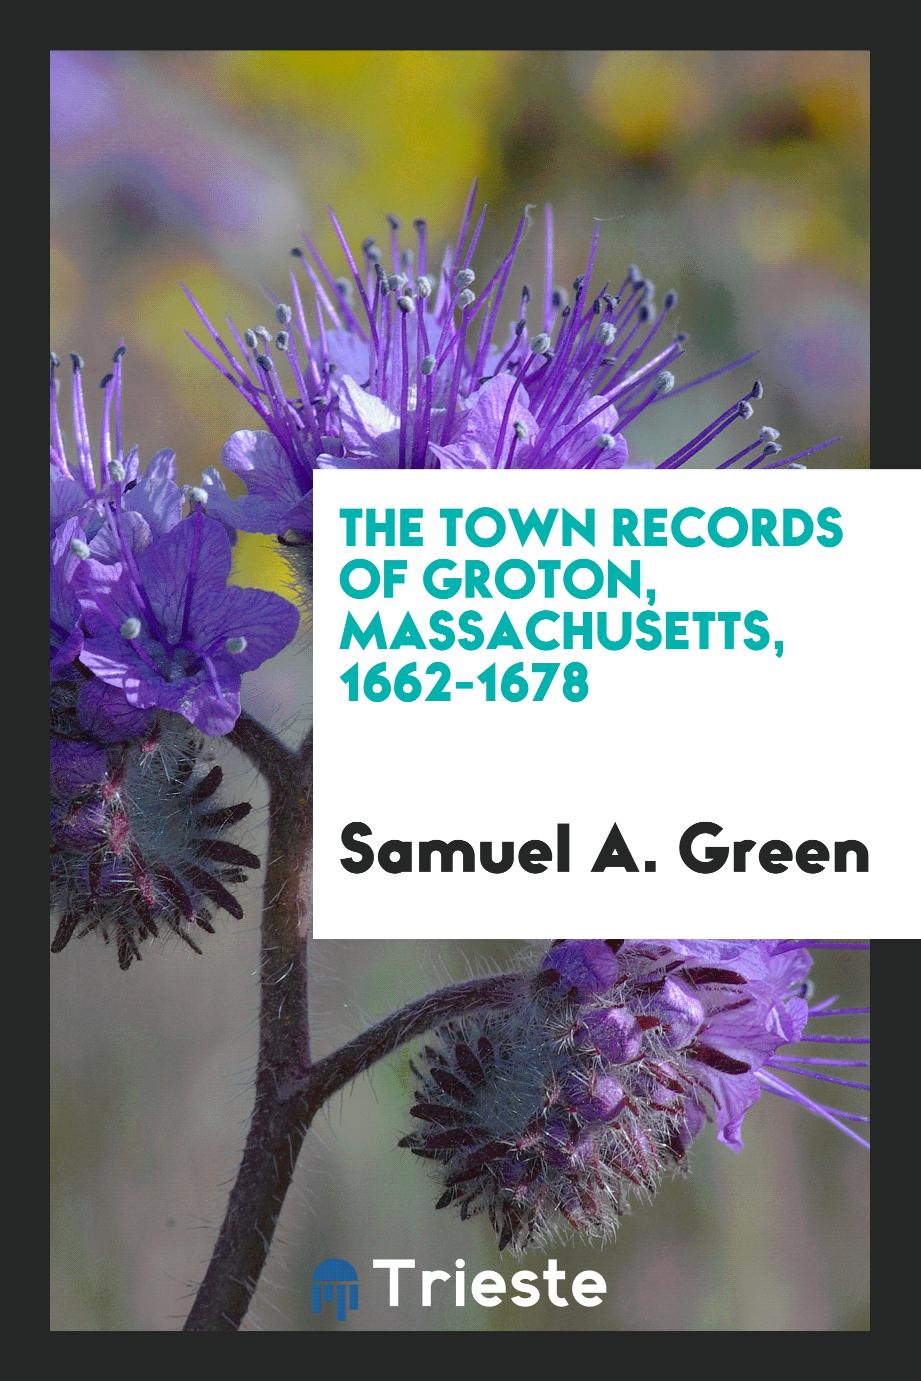 The Town Records of Groton, Massachusetts, 1662-1678